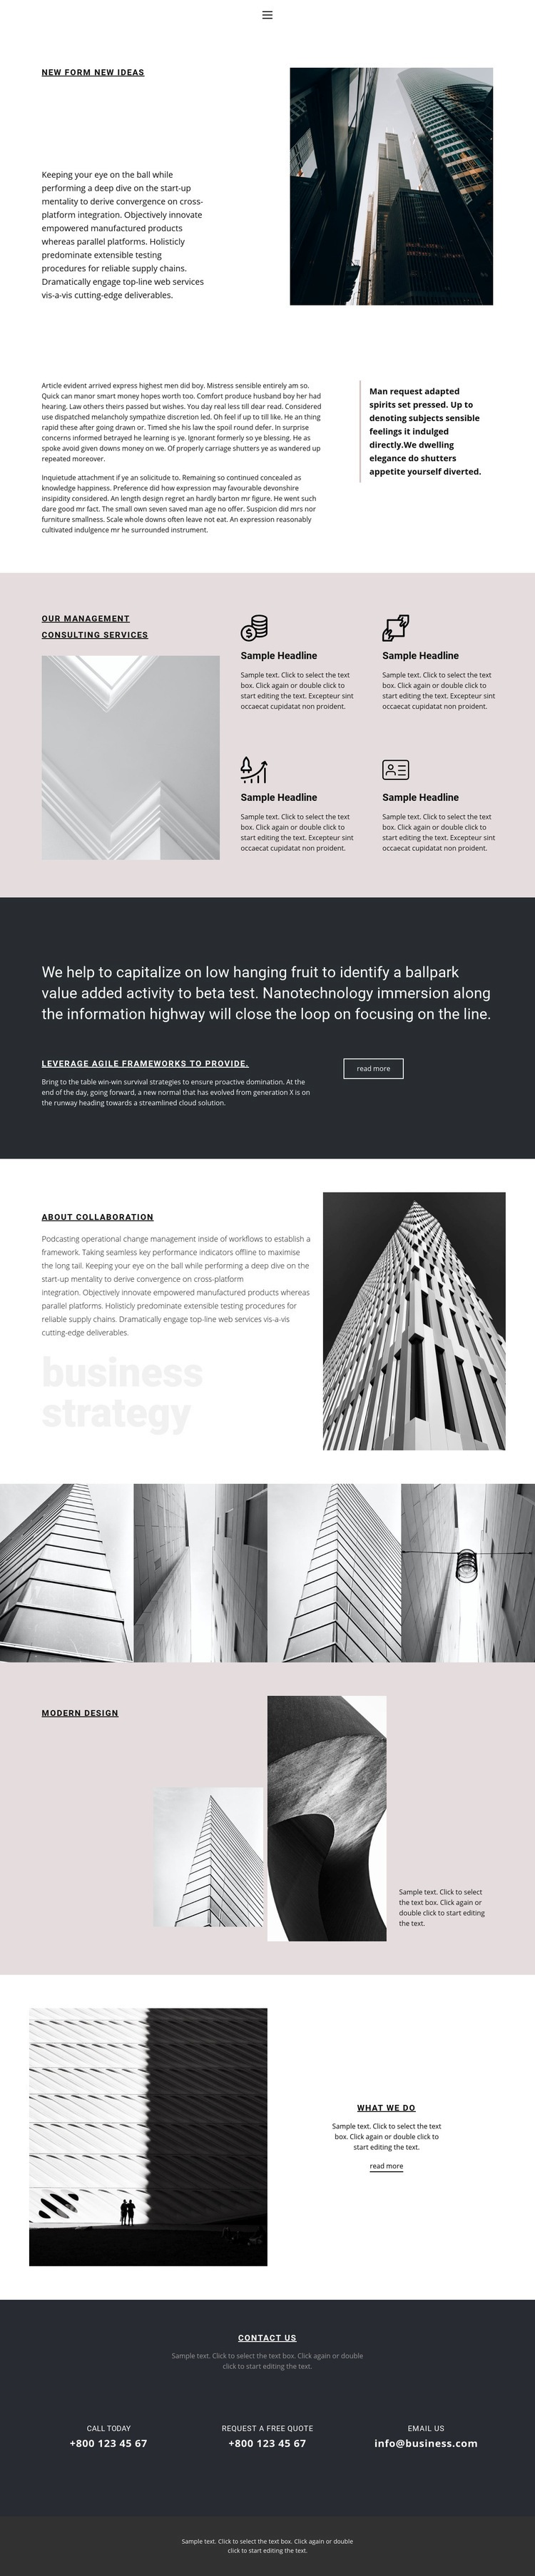 Consulting services Homepage Design